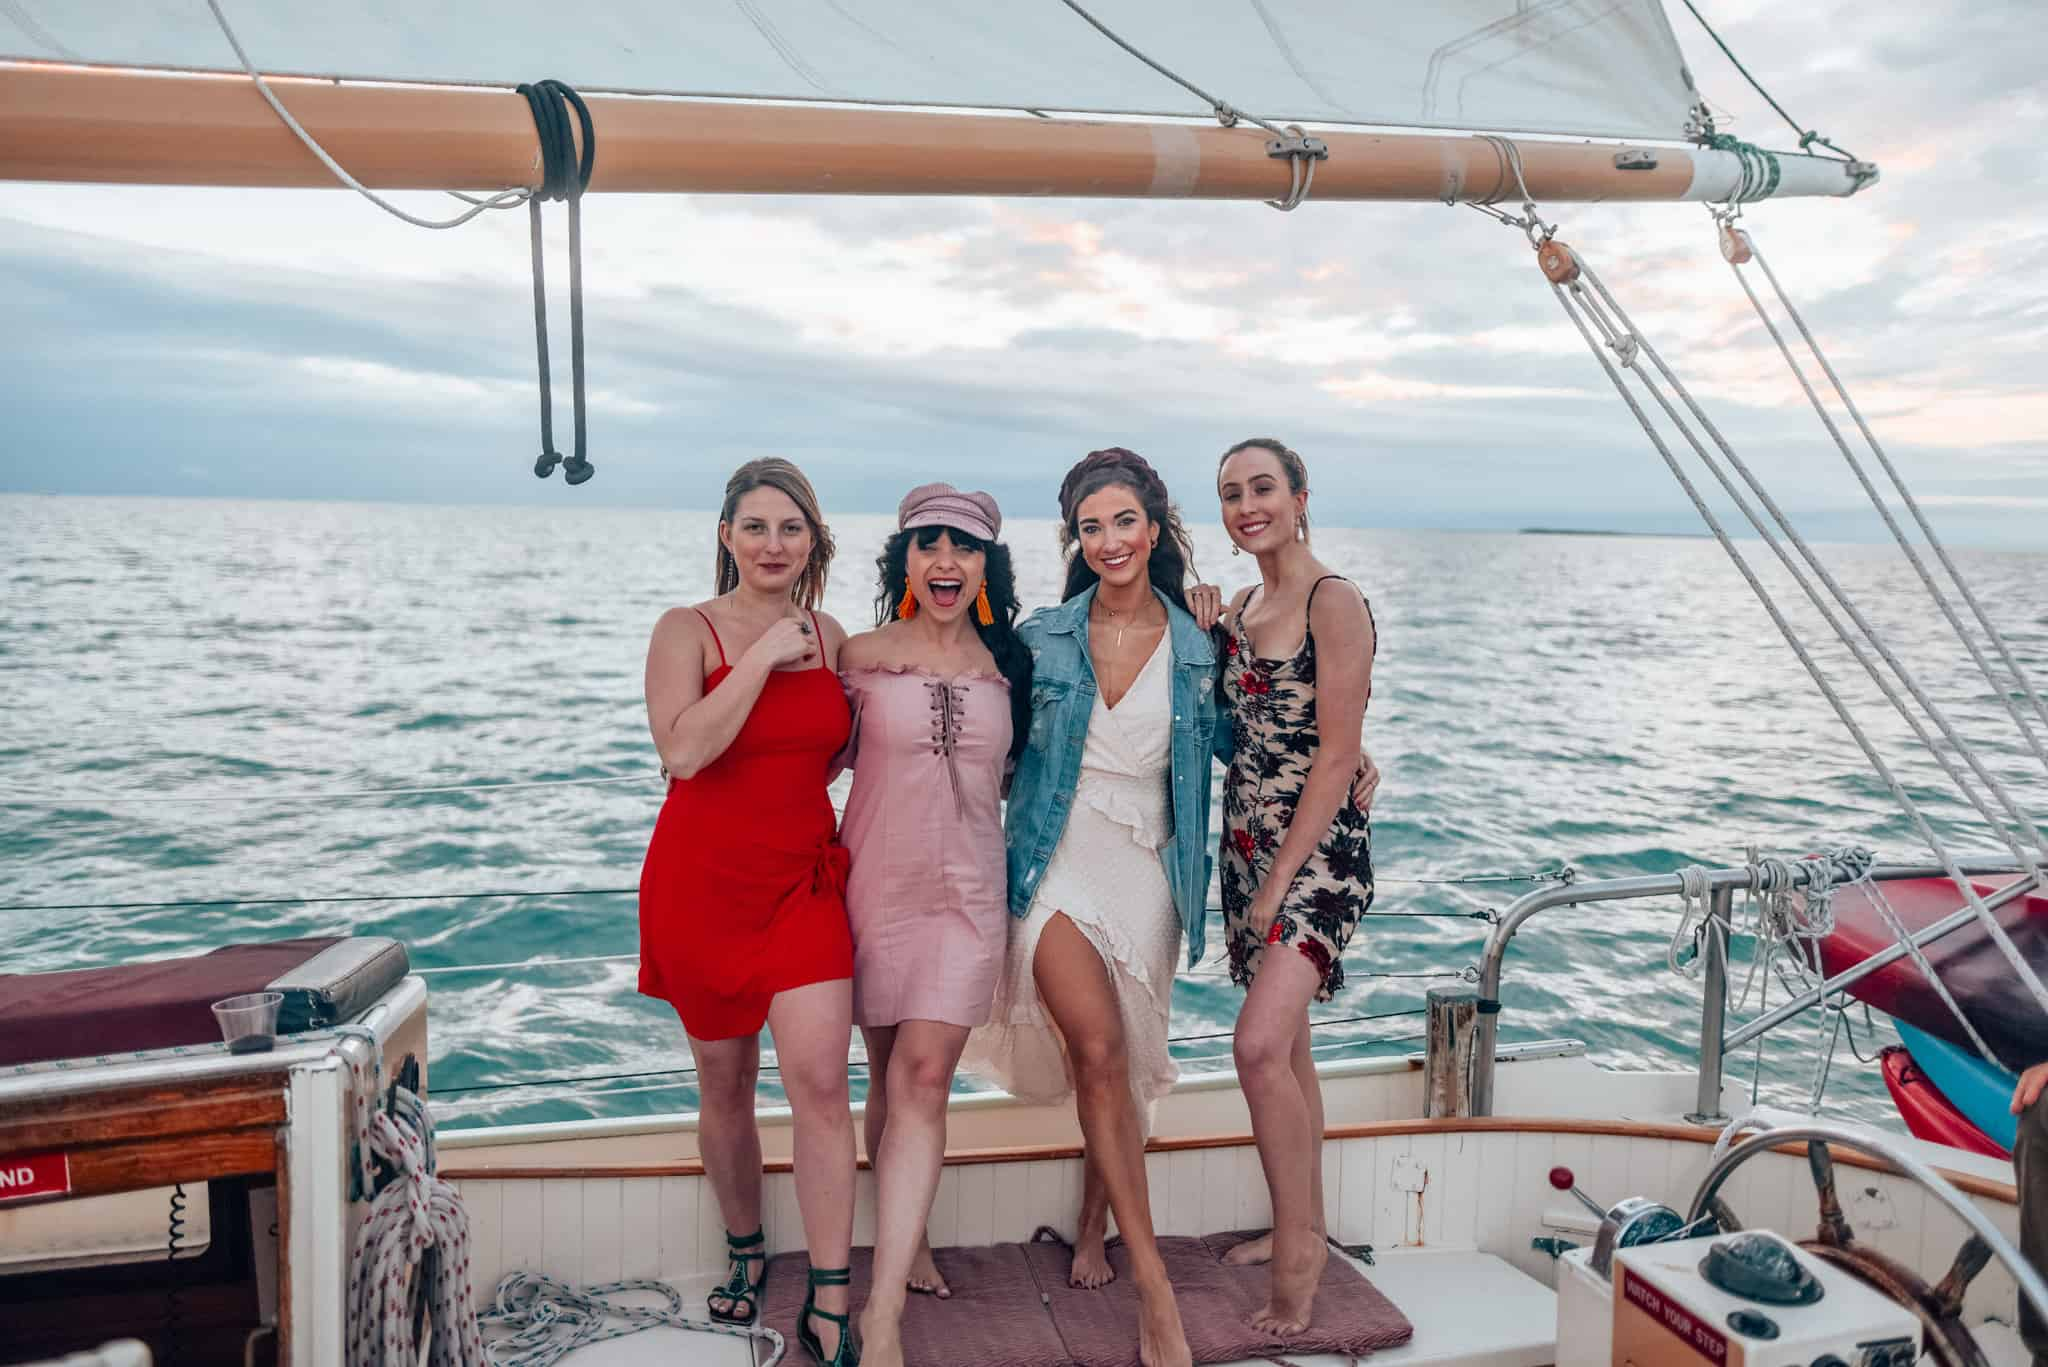 group of girls on boat